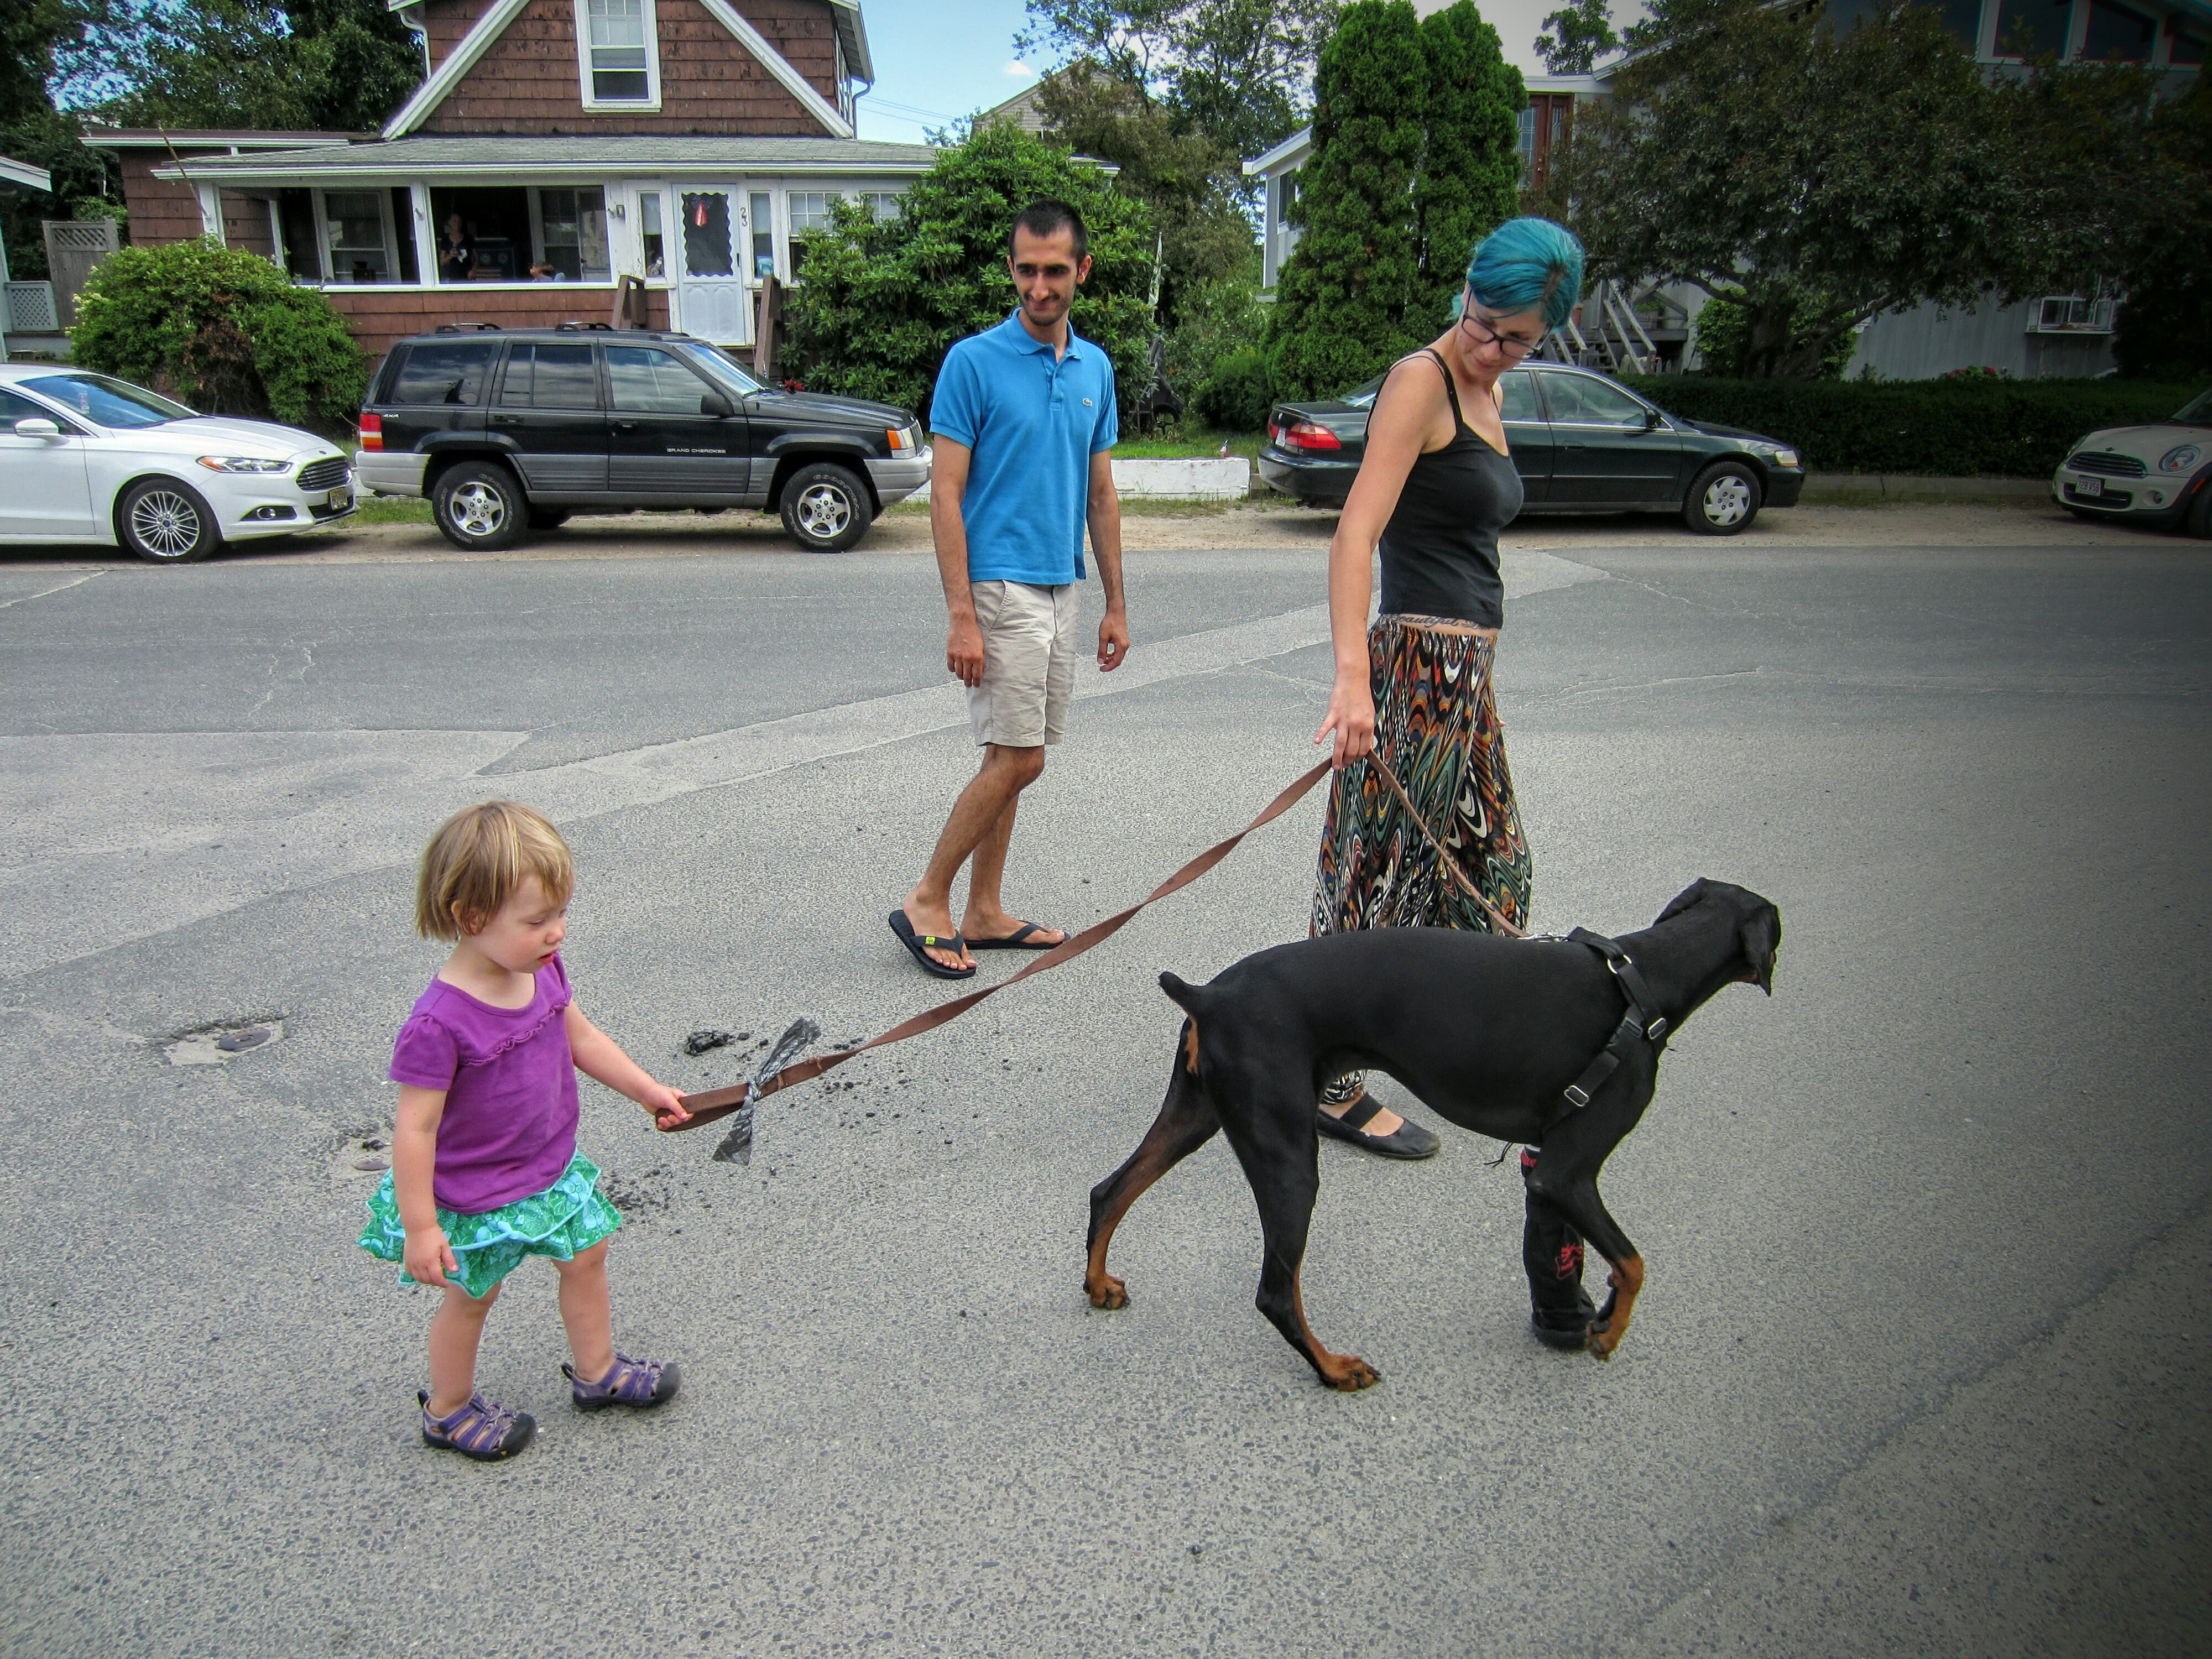 Auntie Verena is raising a dog walker in the making! (photo cred: Aloisia Soutar)